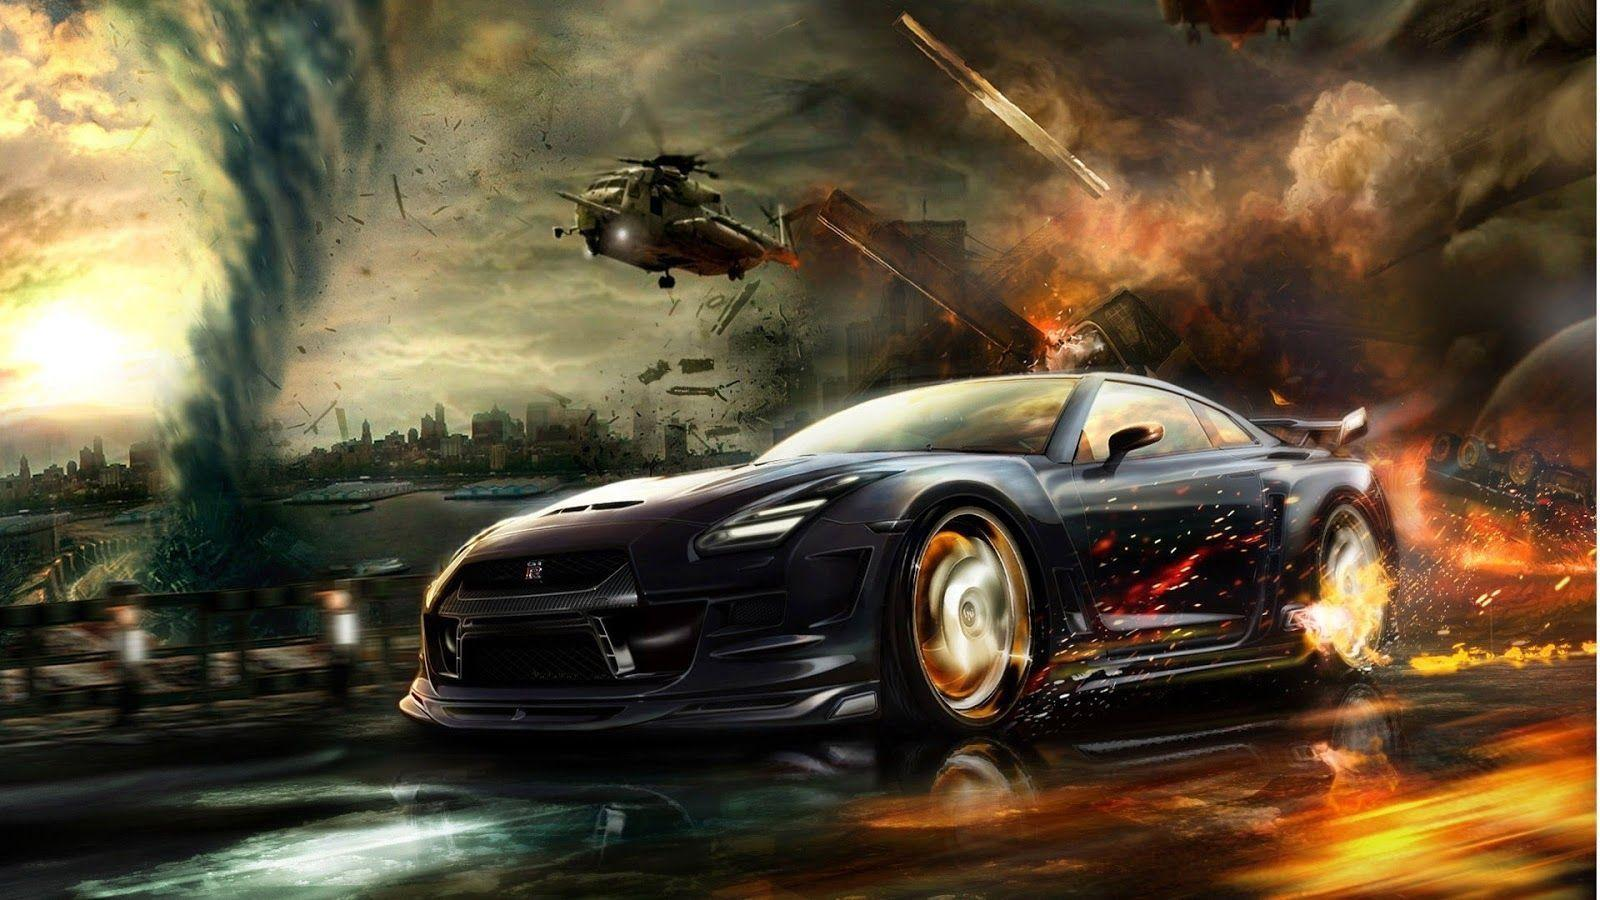 cool car wallpapers - wallpaper cave